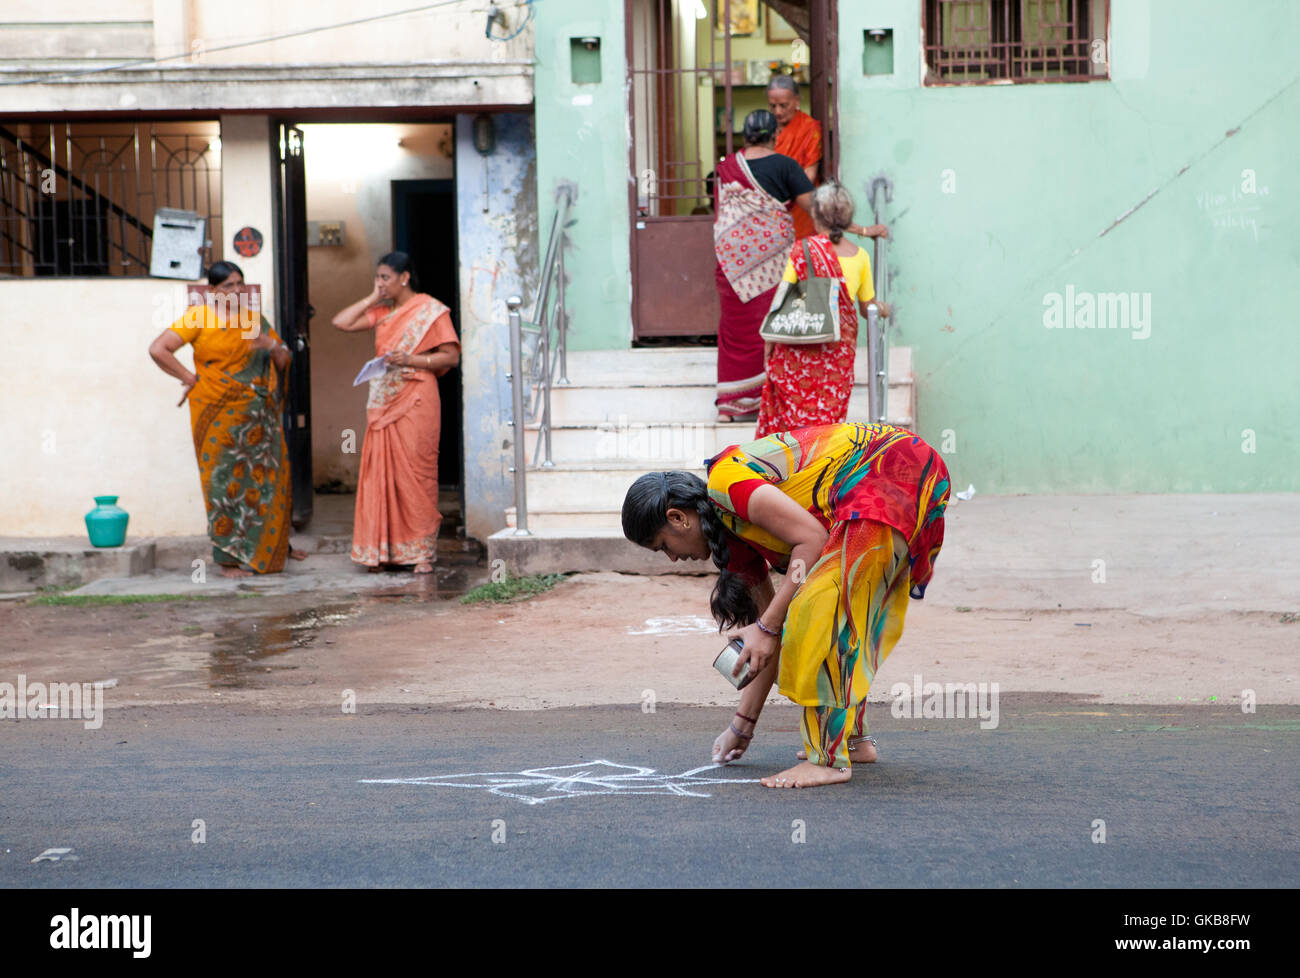 Woman creating rice flour ornament on the asphalt for a religious festival in Tiruchirappalli, India - Stock Image